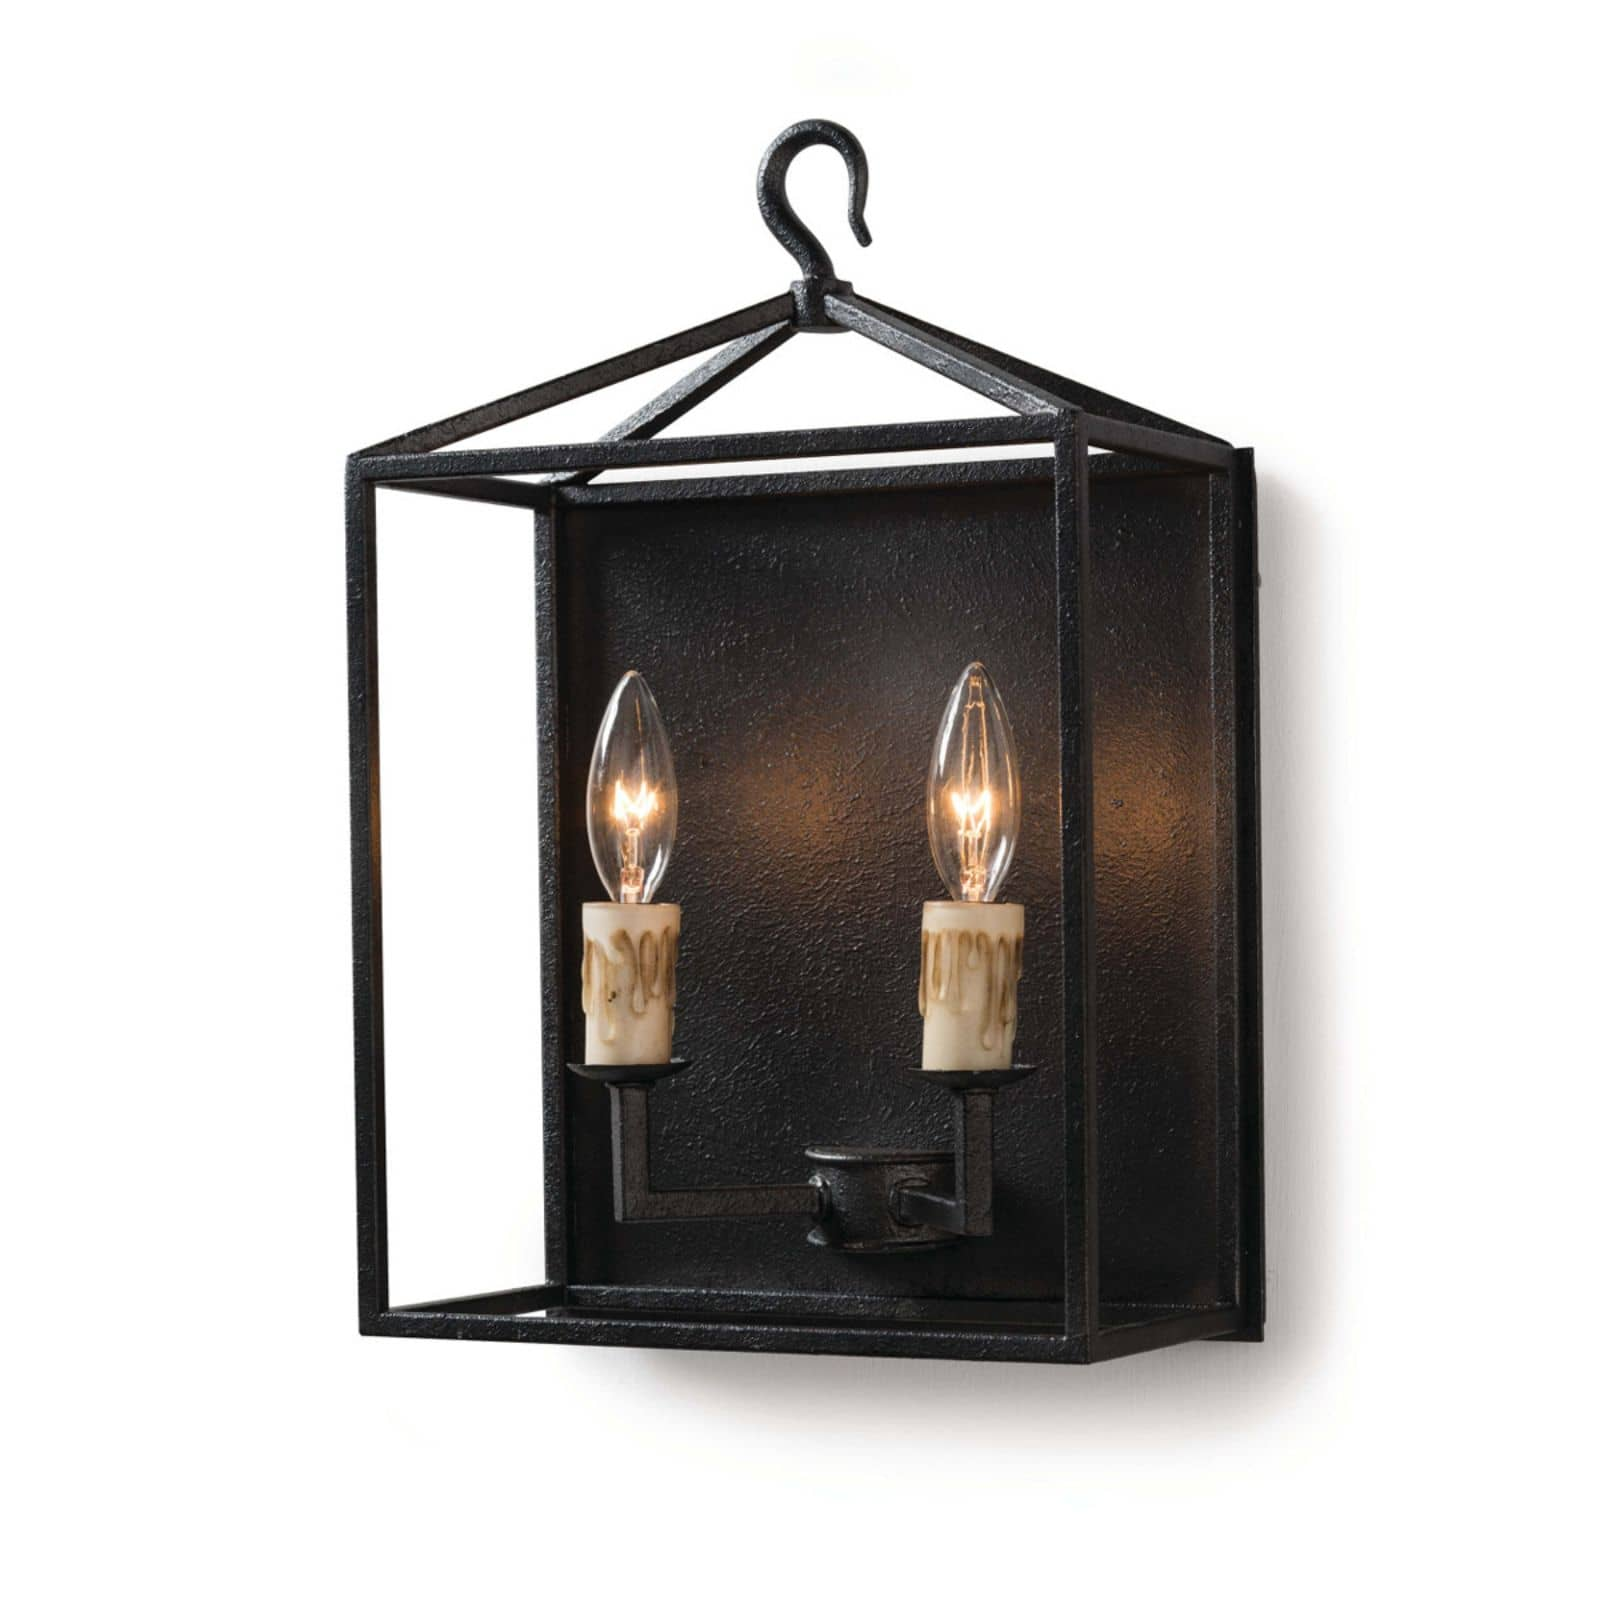 Cape Sconce Blackened Iron | Regina Andrew